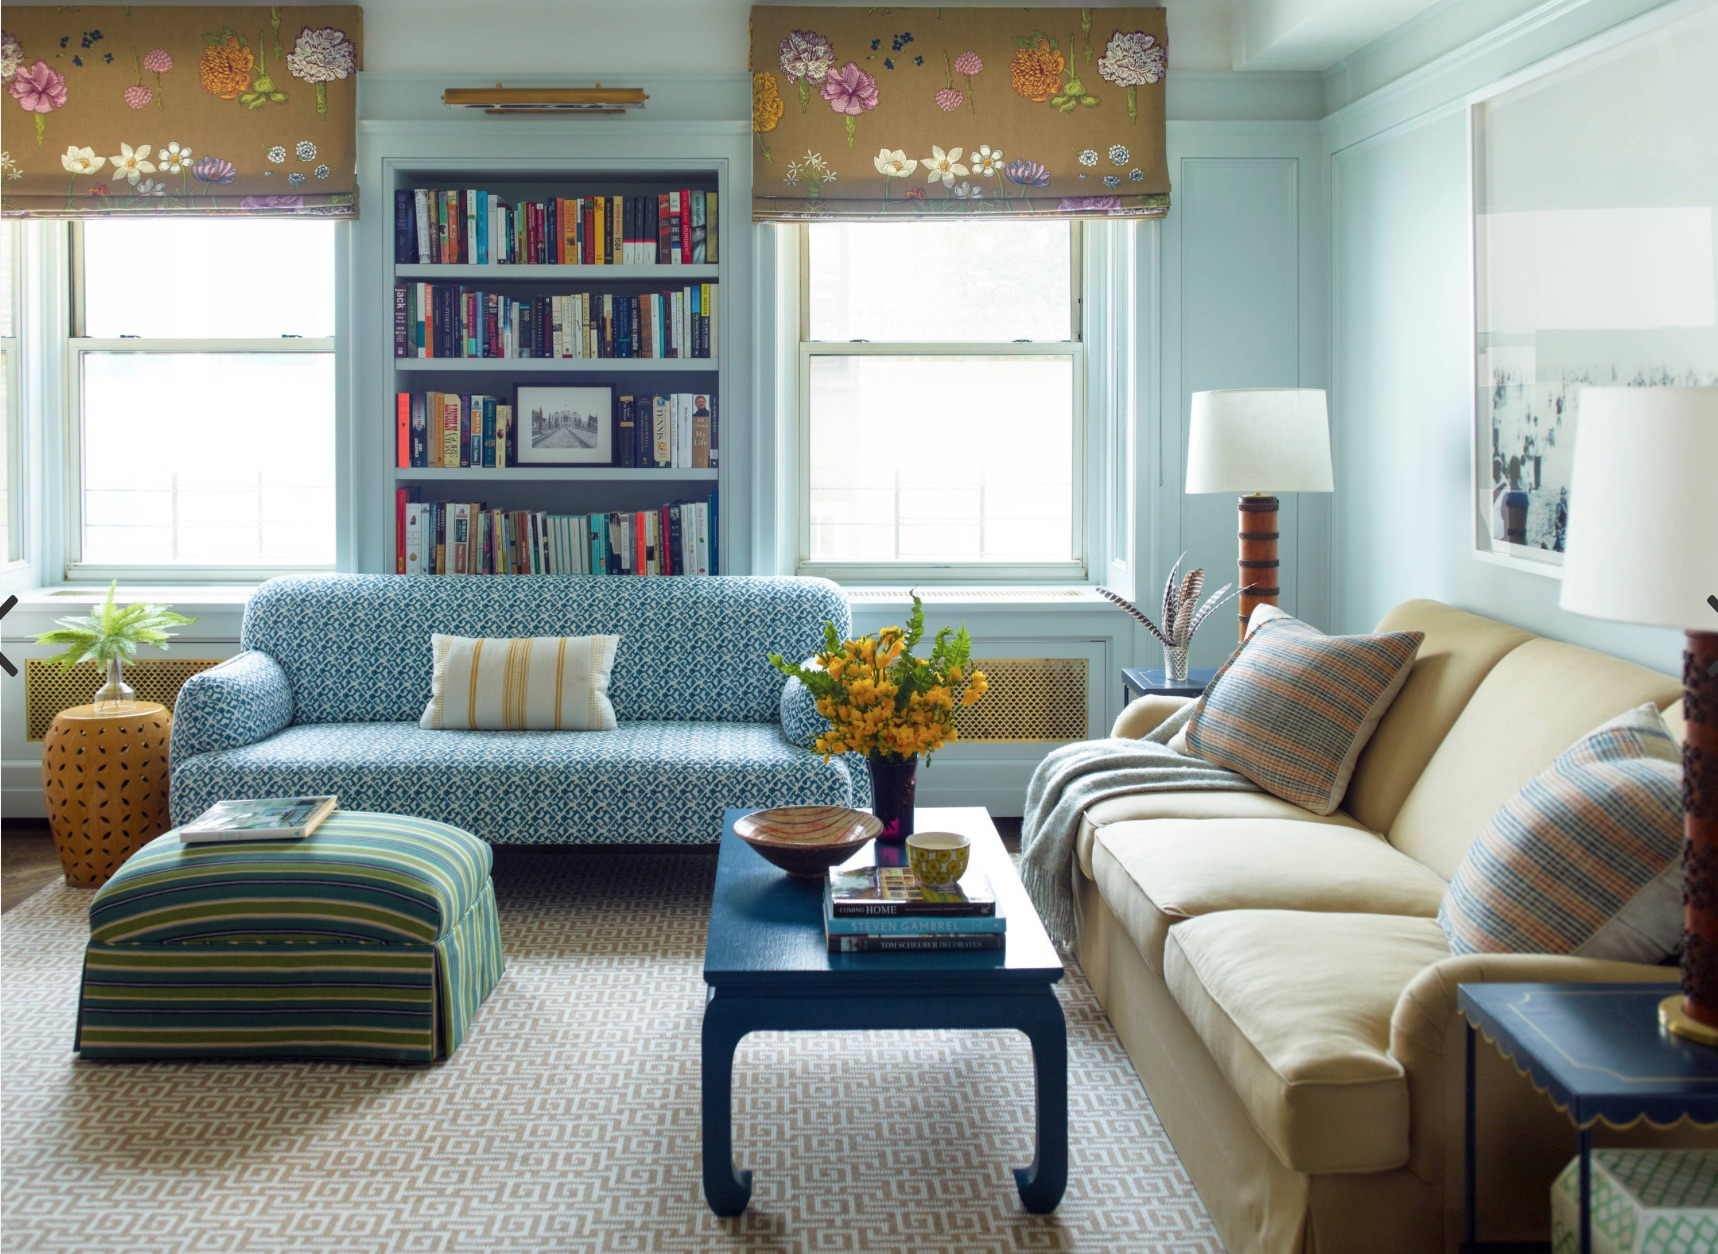 floral roman shades and light blue walls